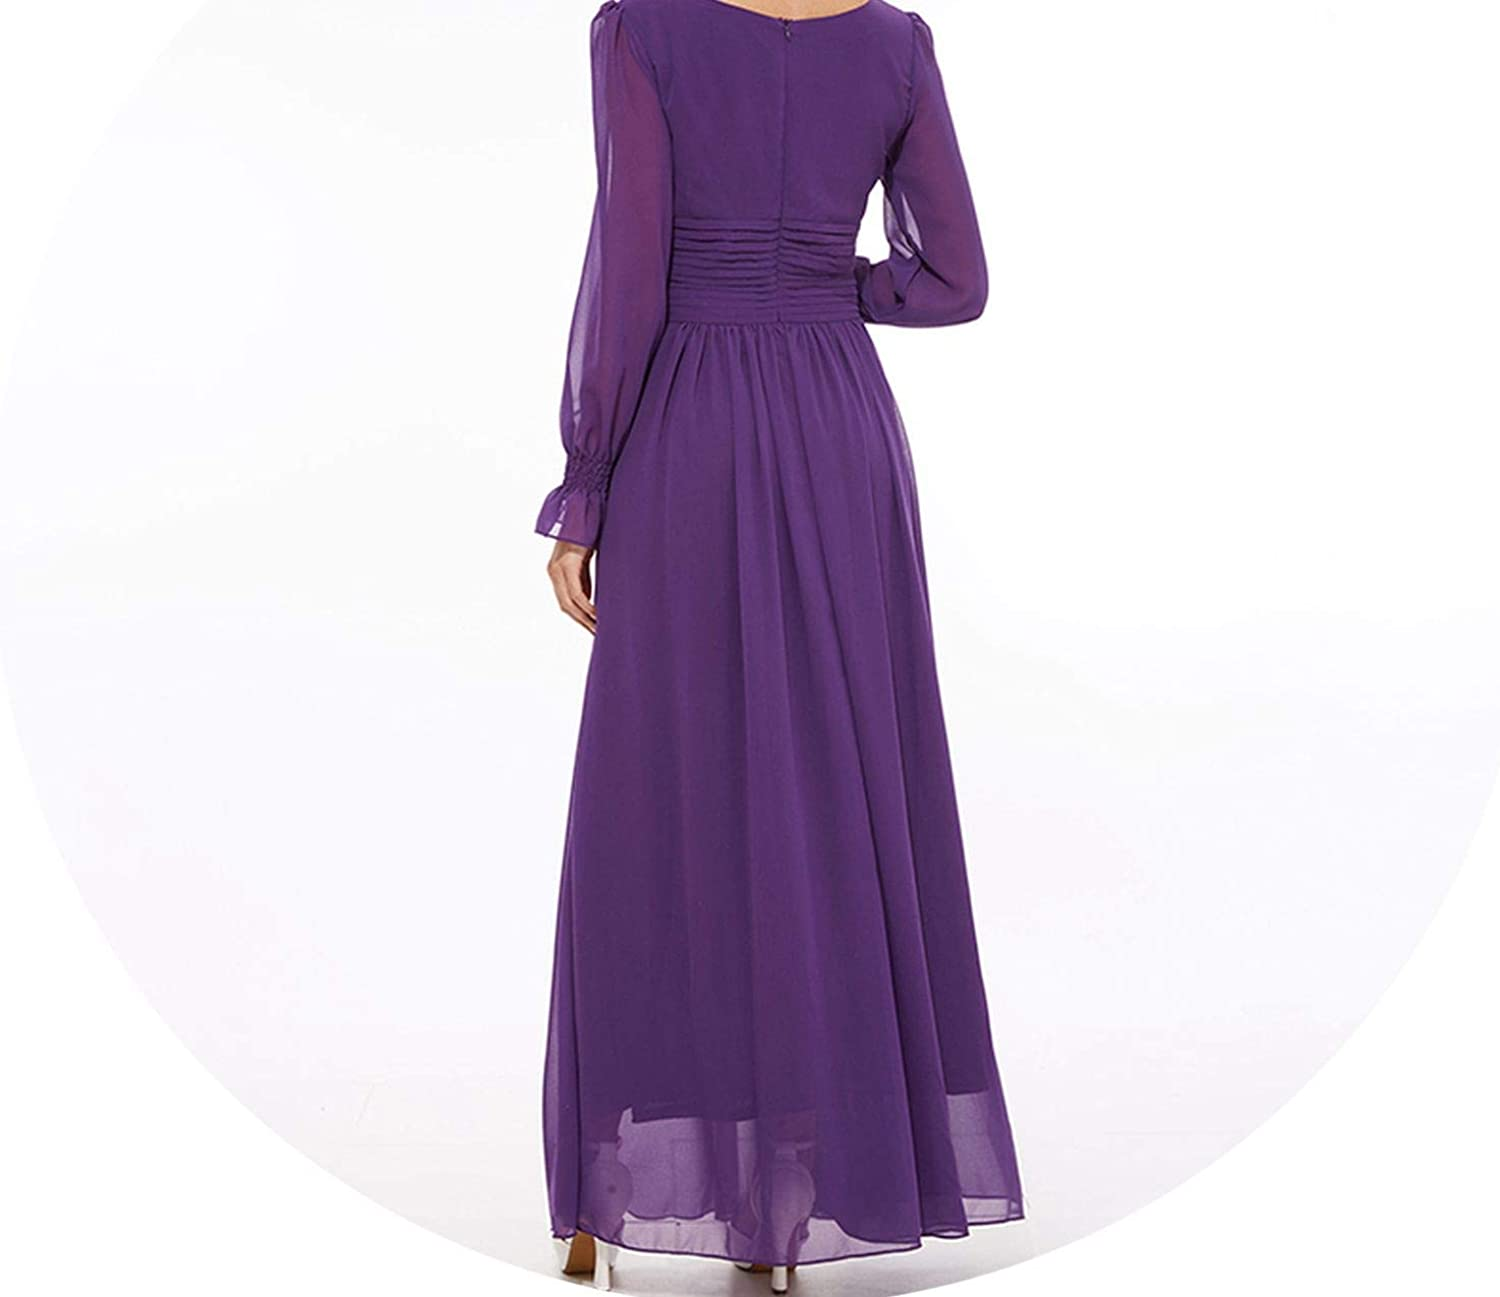 Pleated Dress Ankle-Length Square Collar Draped Lantern SLE Long Robe Elastic Swing Dresses